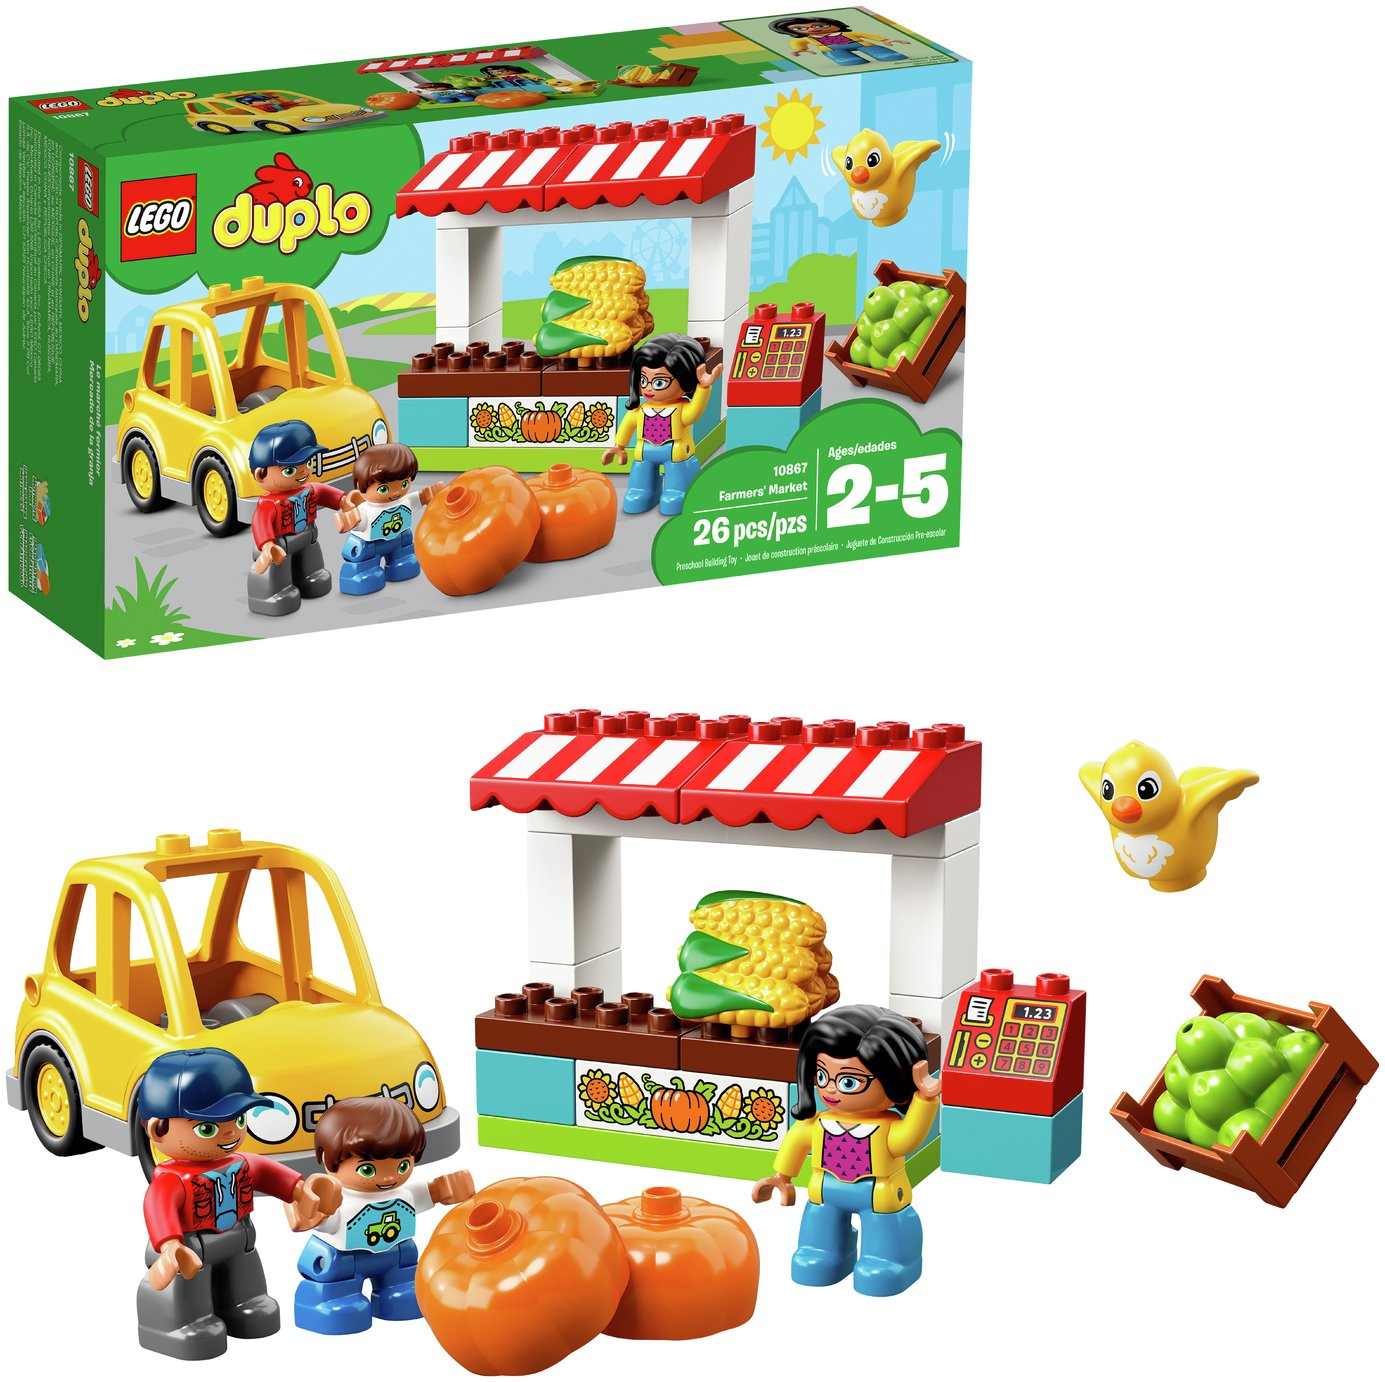 Buy LEGO DUPLO Farmers Market Playset -10867 at Argos.co.uk - Your ...